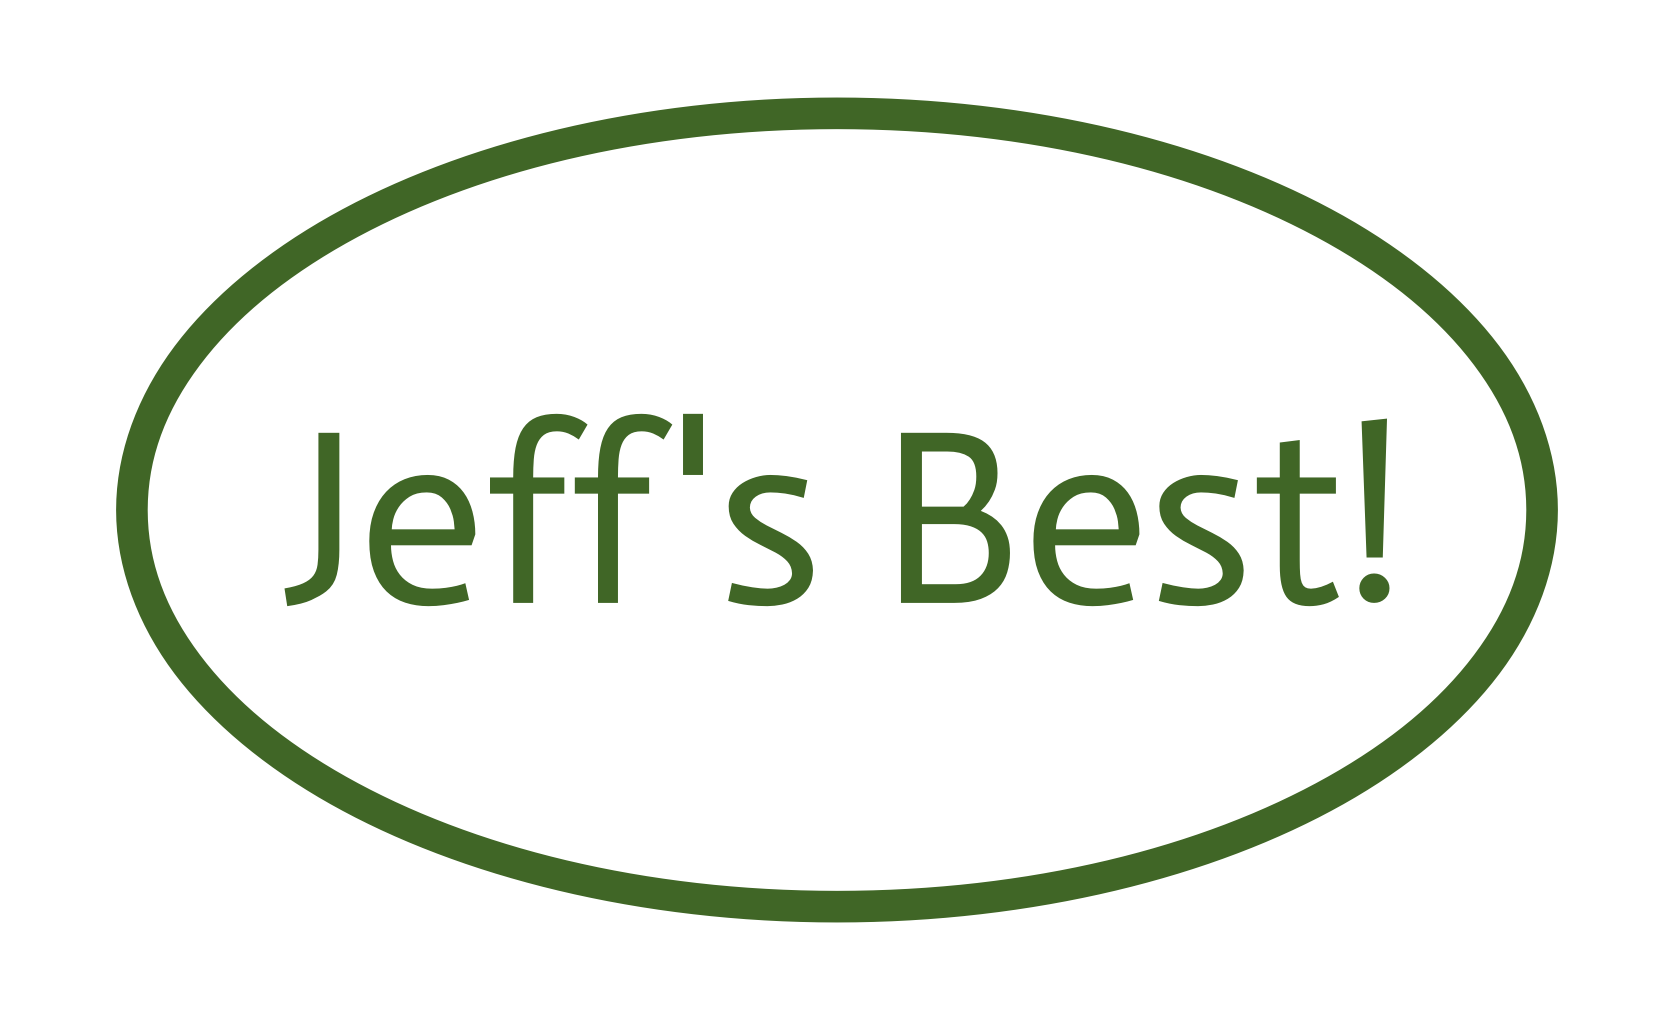 Jeff's Best Coupons and Promo Code